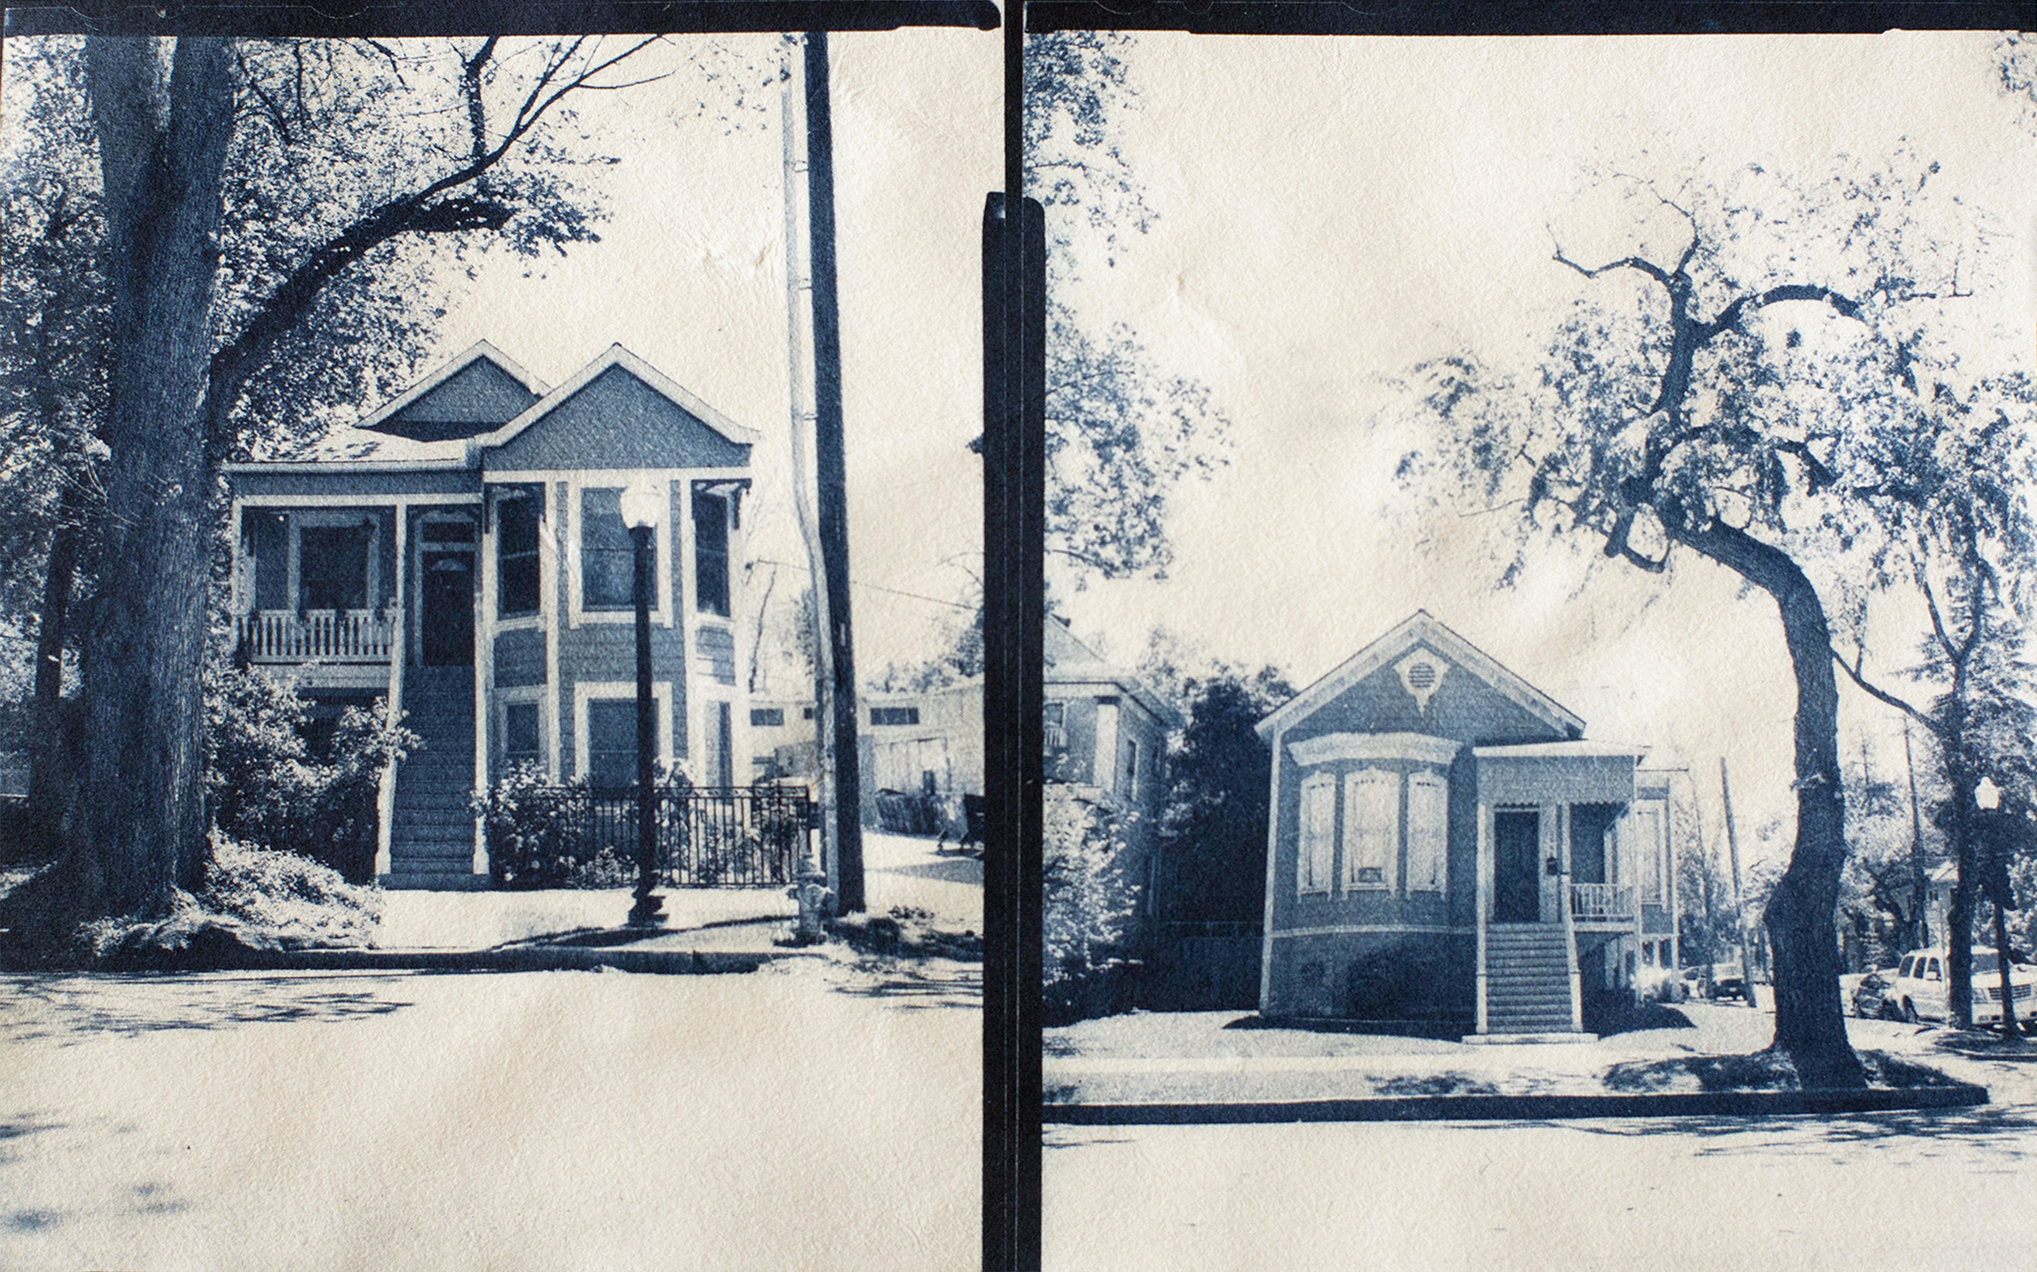 Contact prints from 4x5 film negative